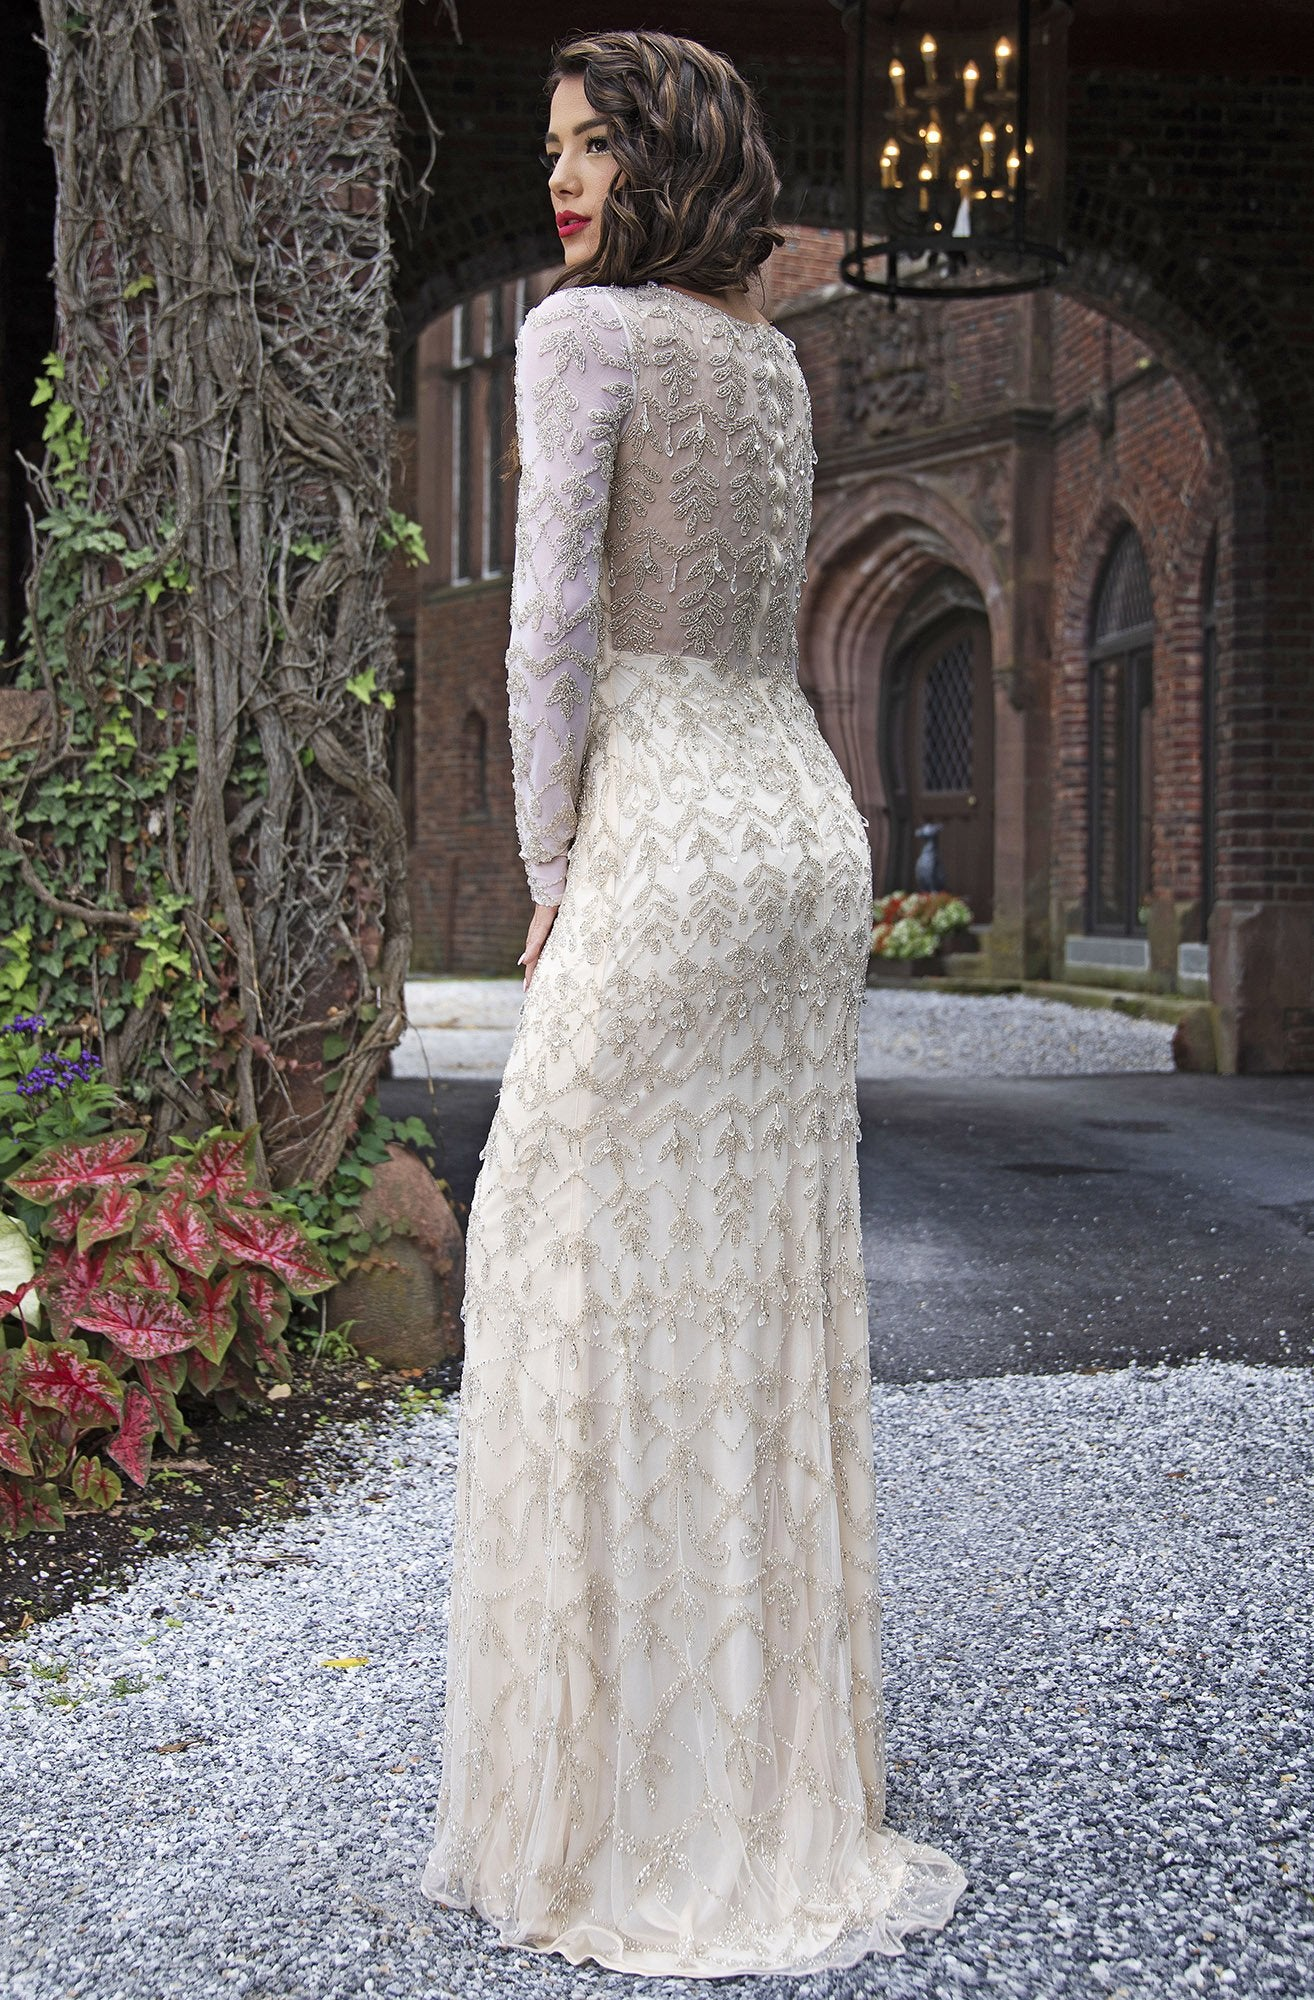 Primavera Couture - 3181 Sequined Long Sleeves Sheath Gown In Nude and Silver